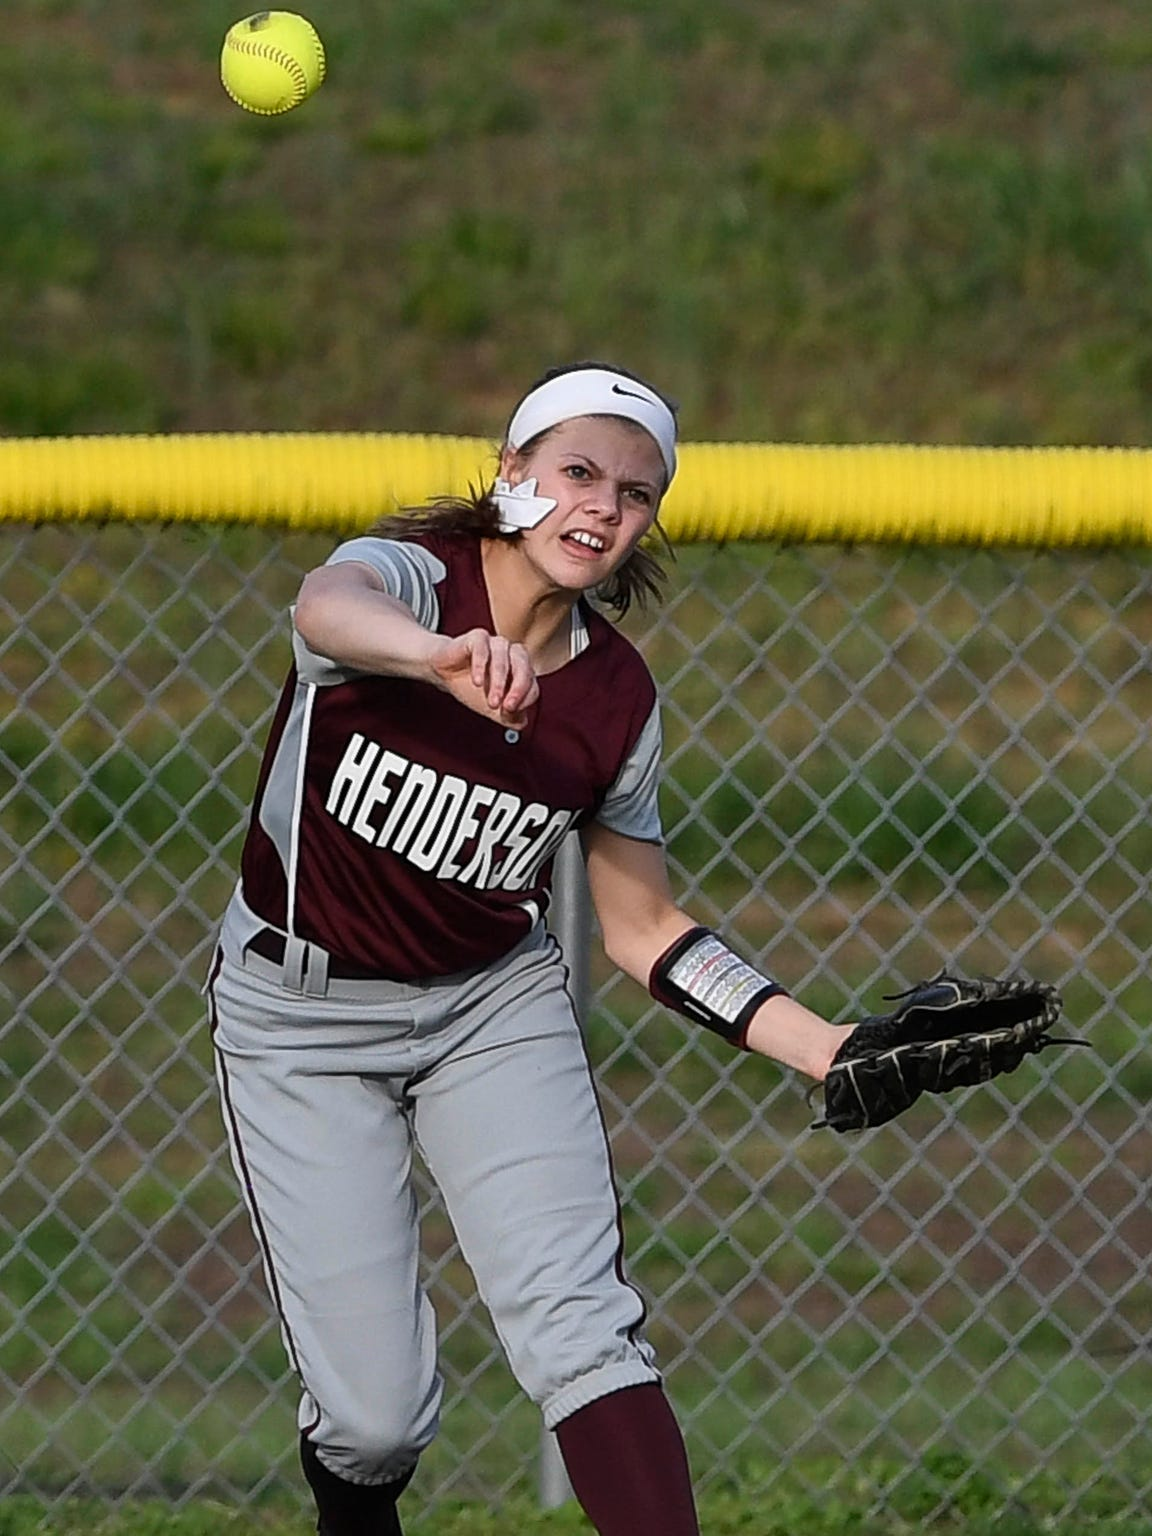 Henderson County outfielder Kaytlan Kemp throws to the infield as Henderson County plays Webster County in Dixon Thursday, April 13, 2017.